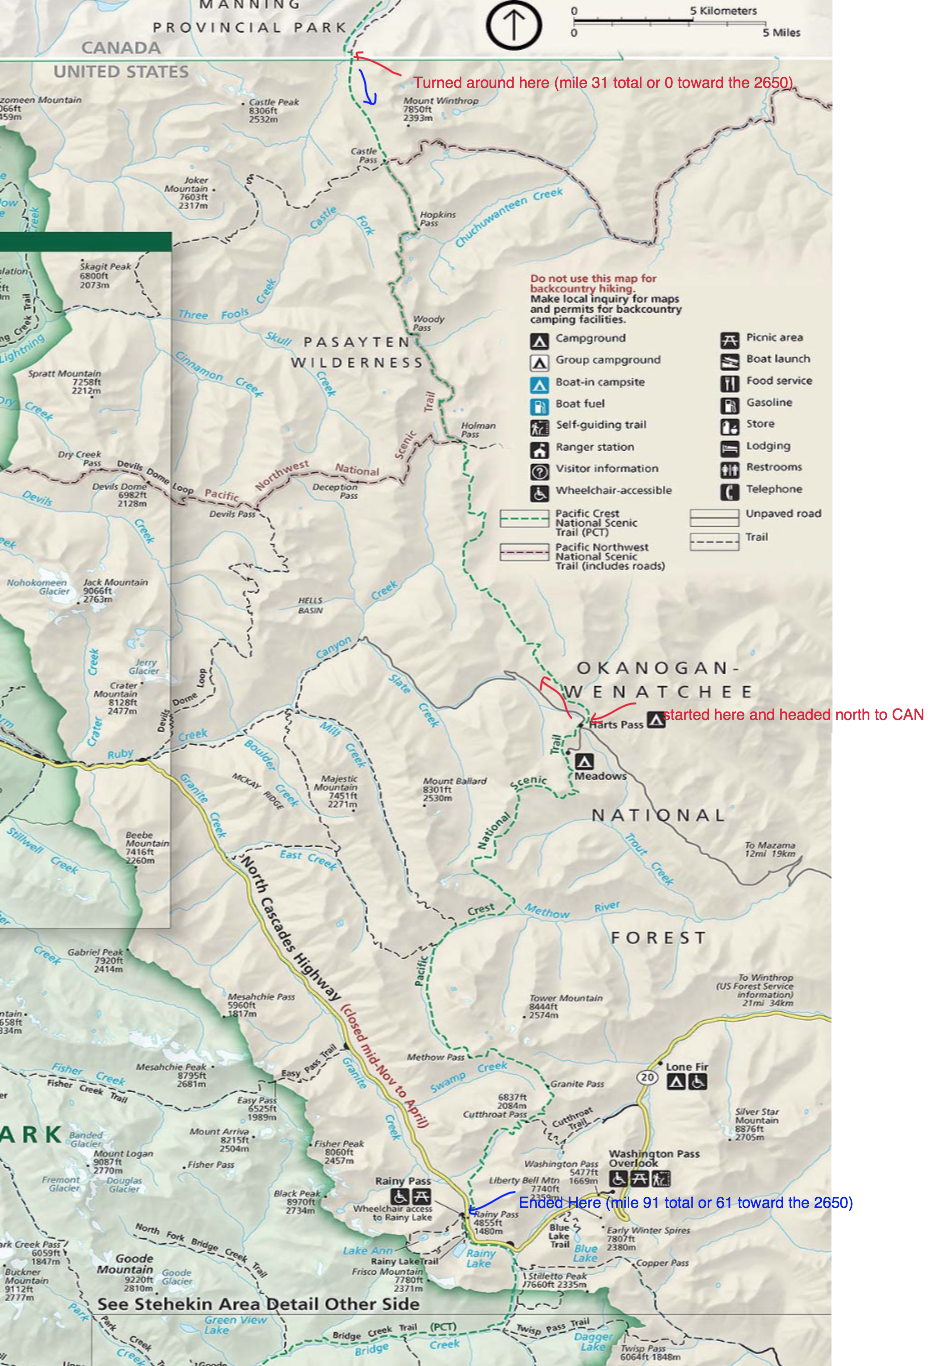 Displayed is the map used to navigate through The Okanogen-Wenatchee National Forest and The Pasayten Wilderness.